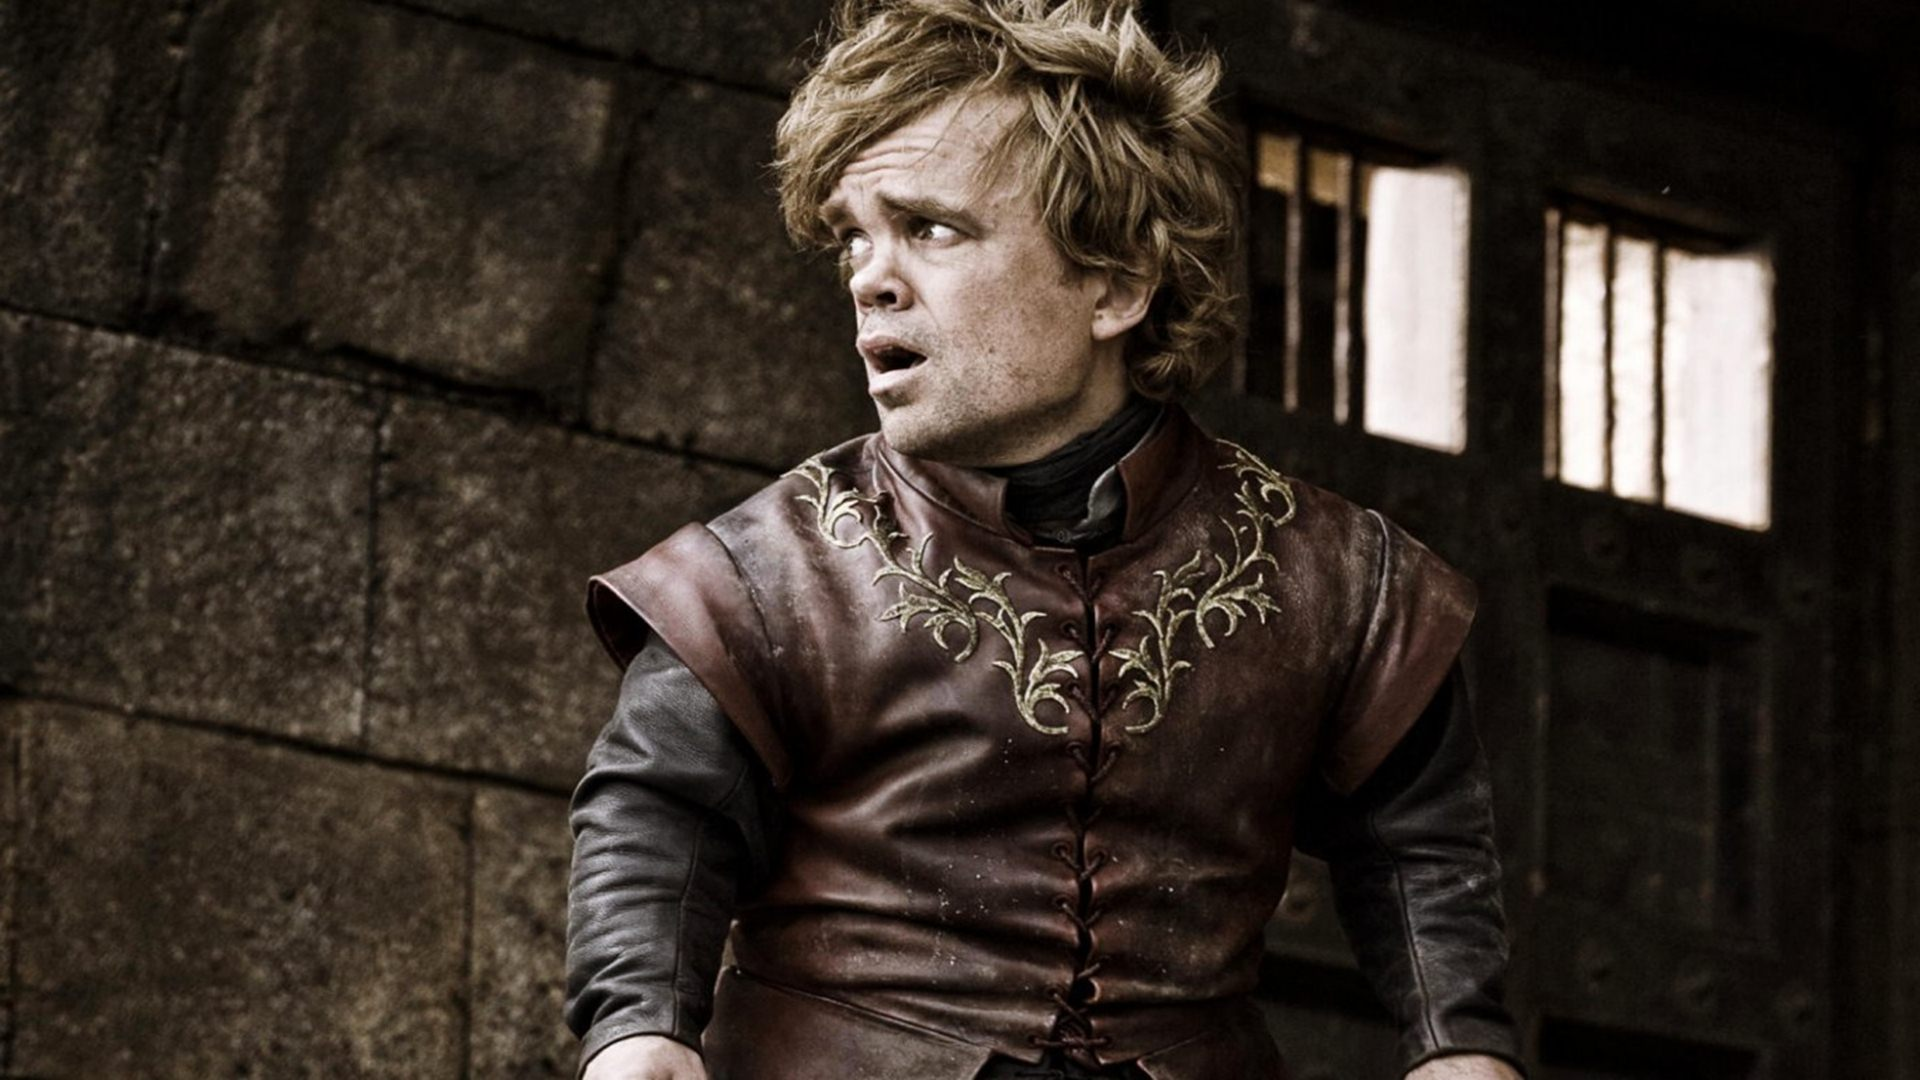 Peter Dinklage As Tyrion Lannister Game Of Thrones Wallpaper